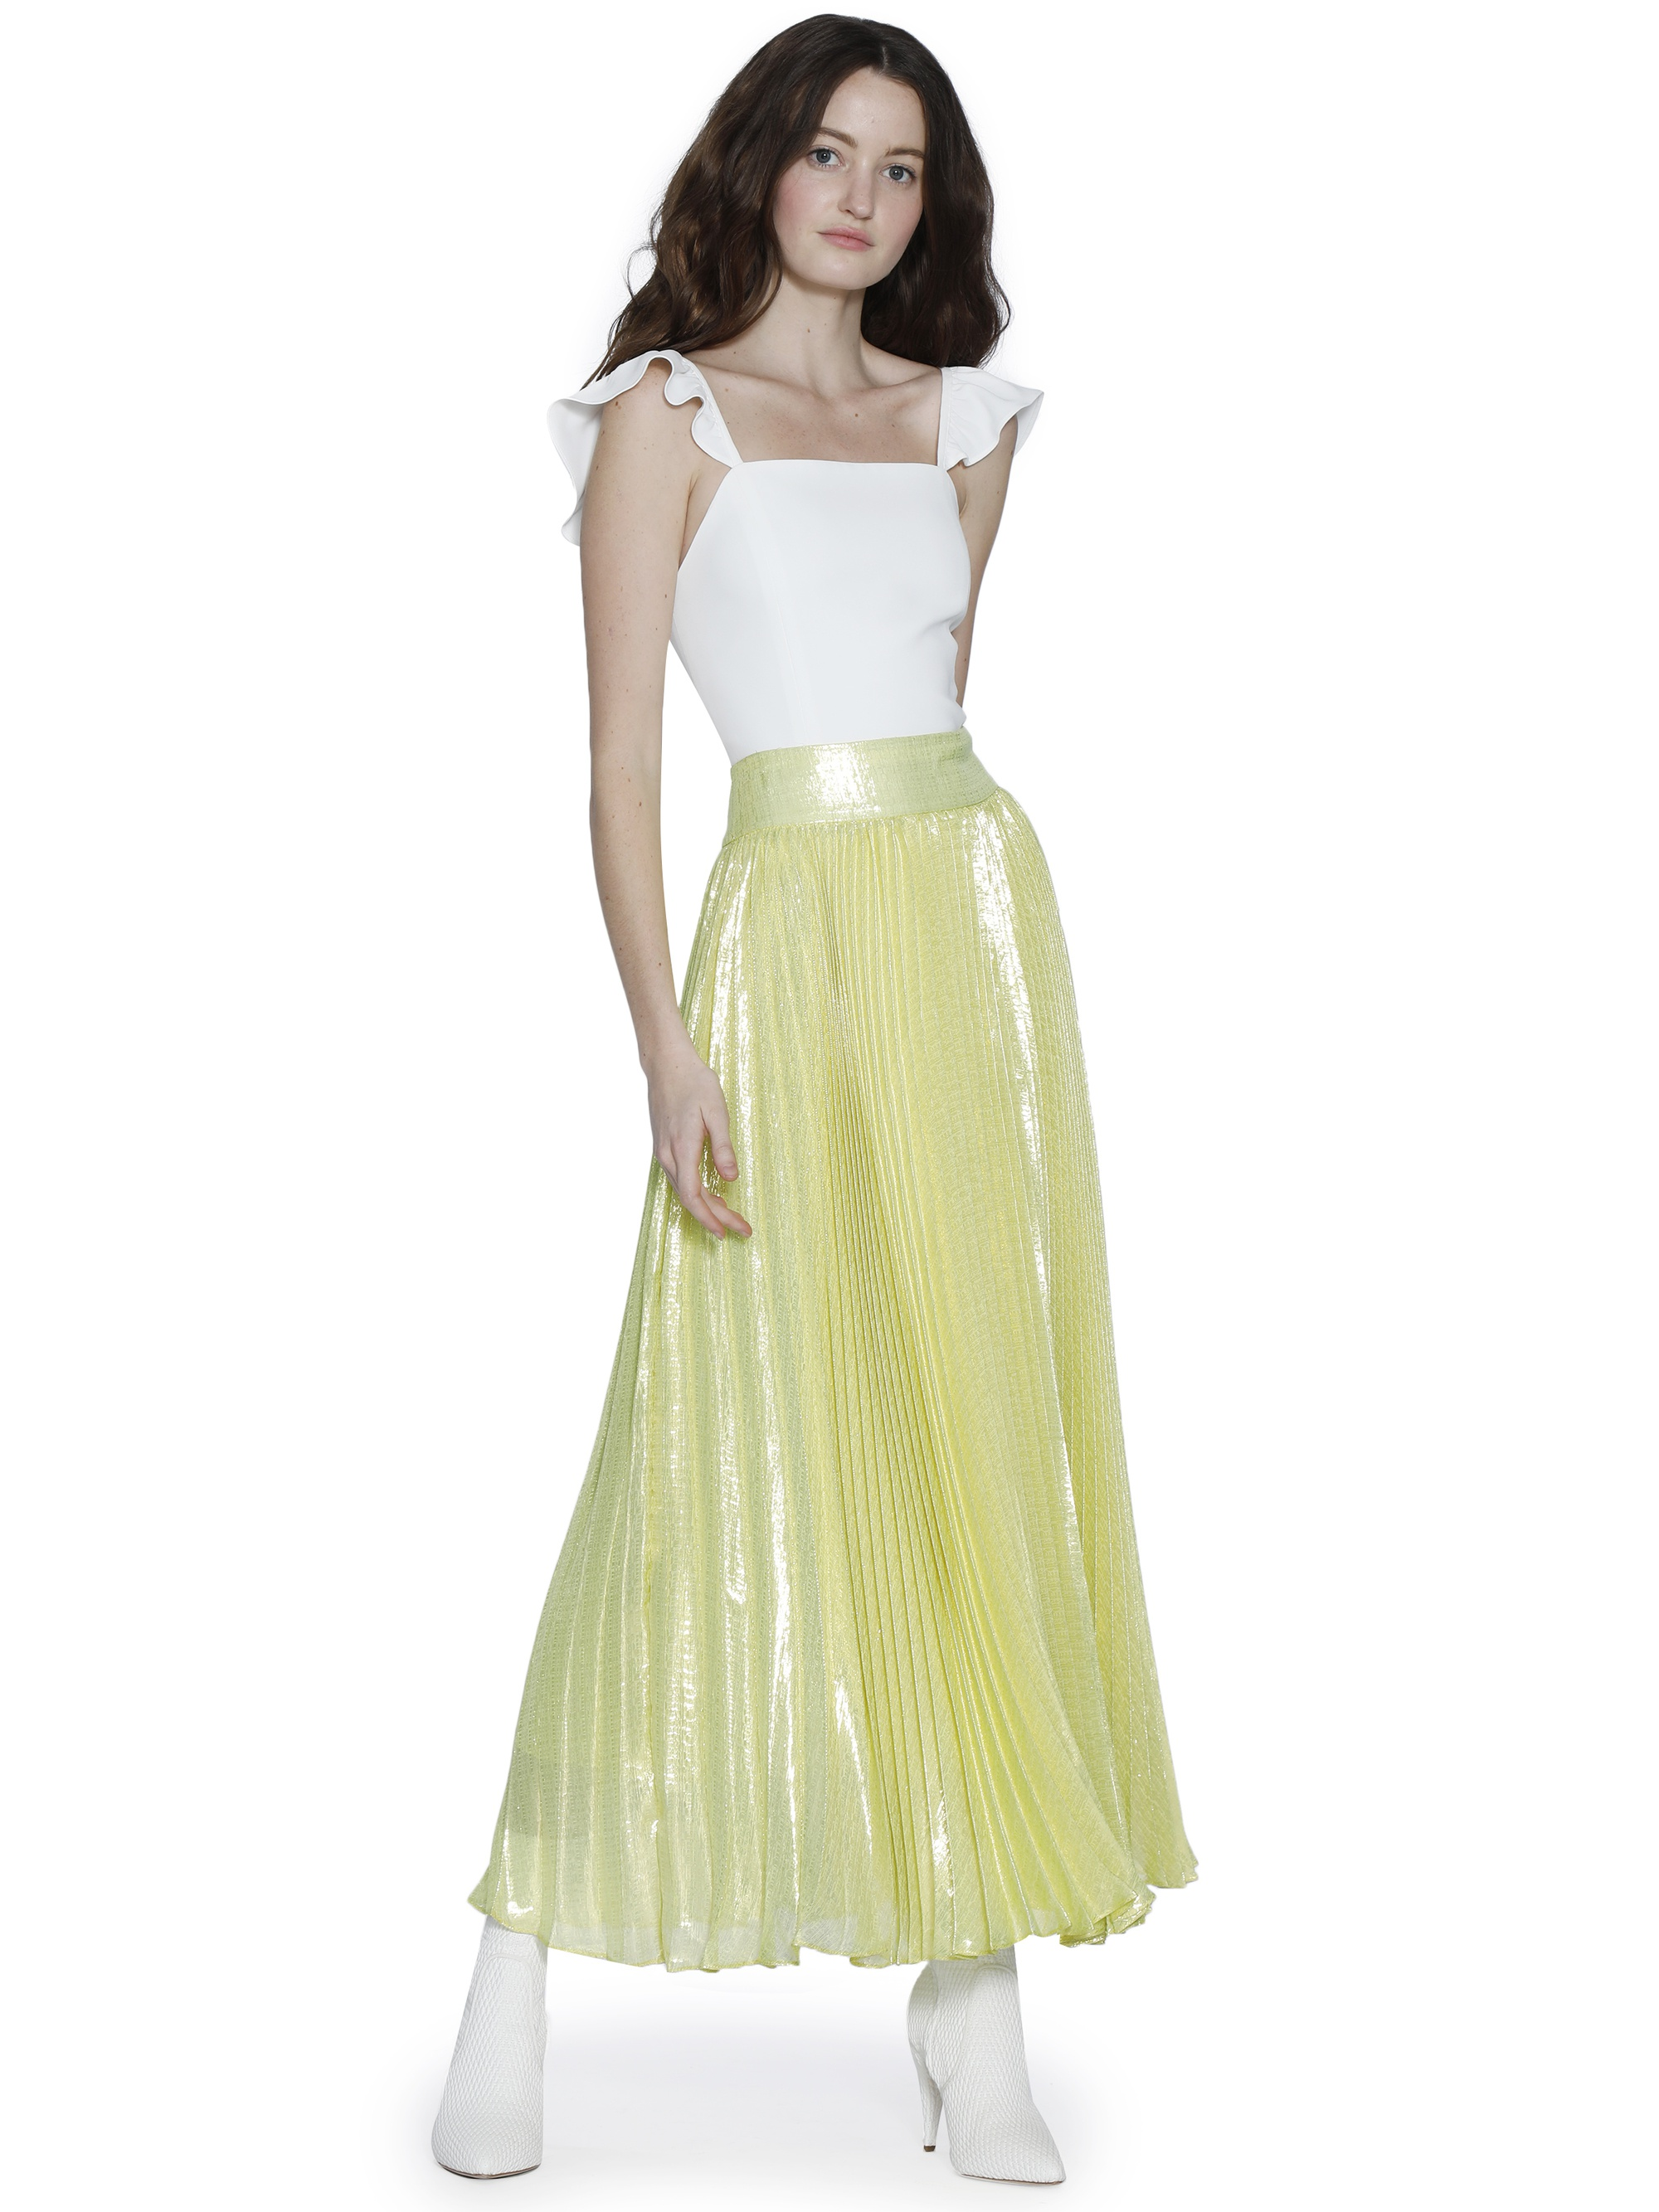 alice_and_olivia_CELESTIAFLUTTERSLEEVECROPTOP_OFFWHITE_888819829254_PRODUCT_01-1346314165.jpg